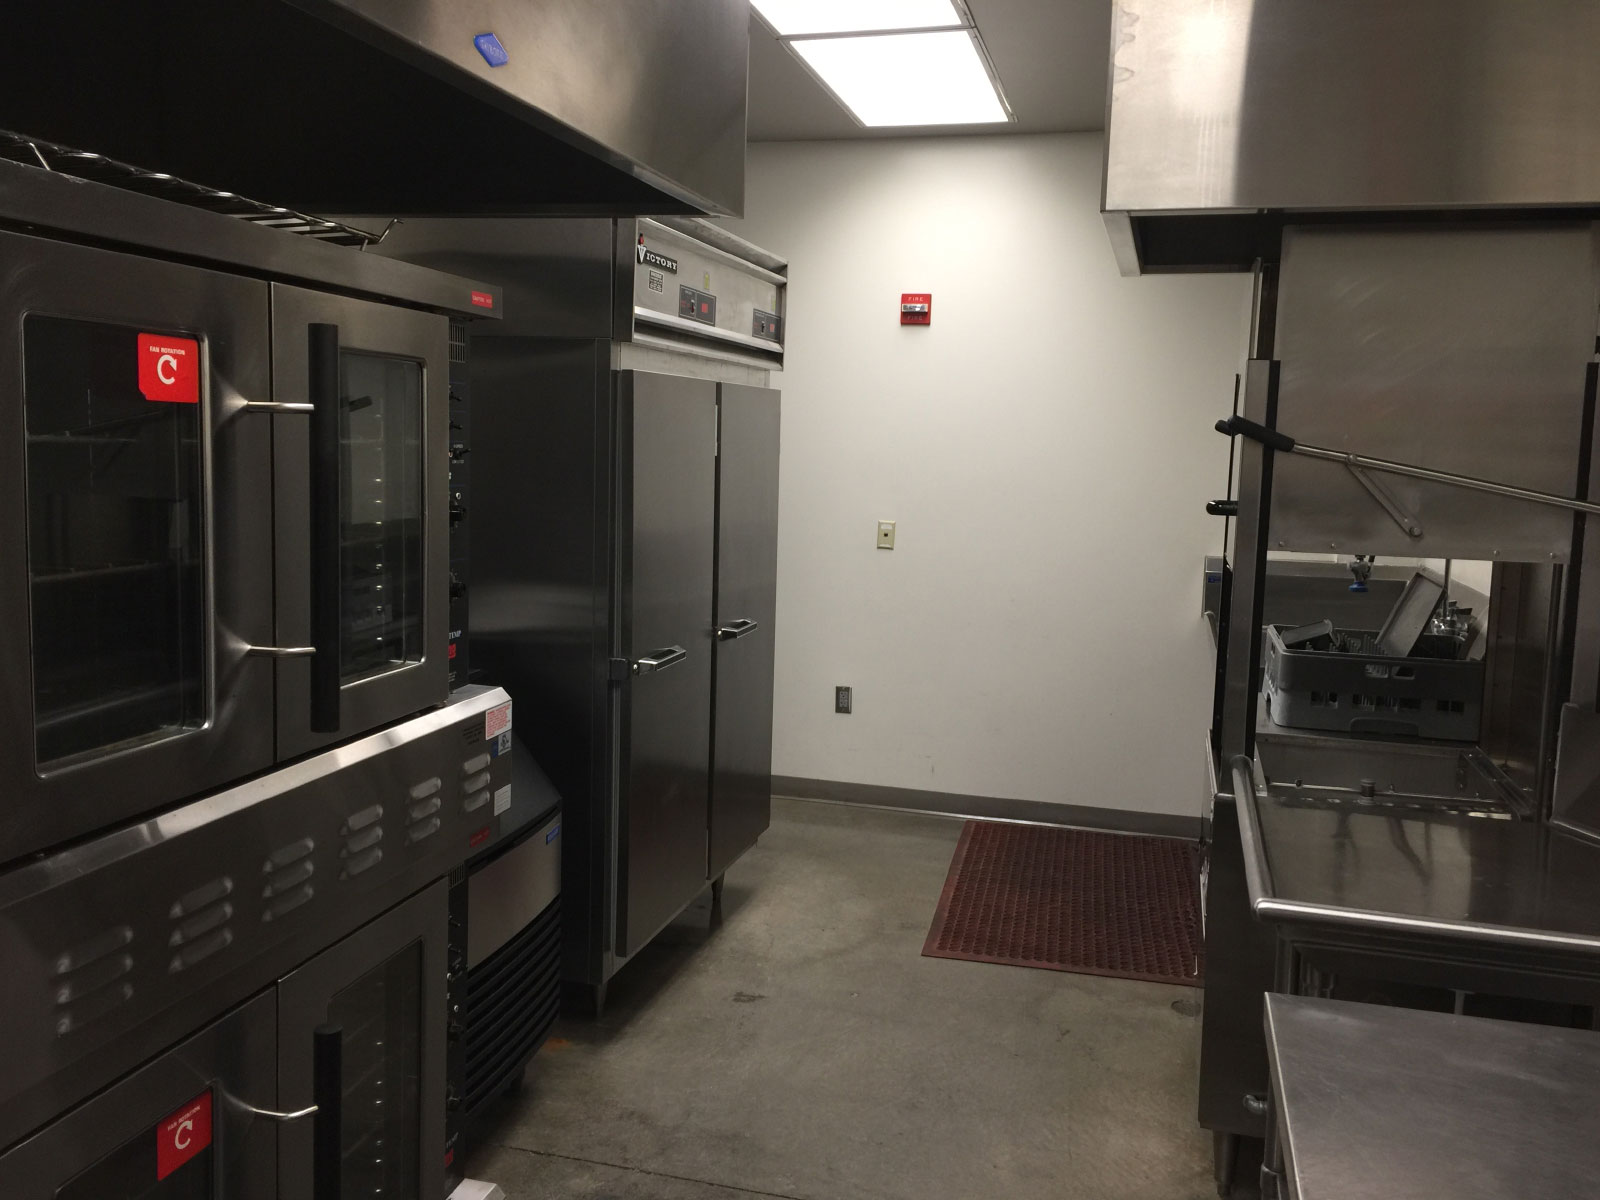 The back area of the Wilsonville campus kitchen area with a refridgerator, dishwasher and heating units